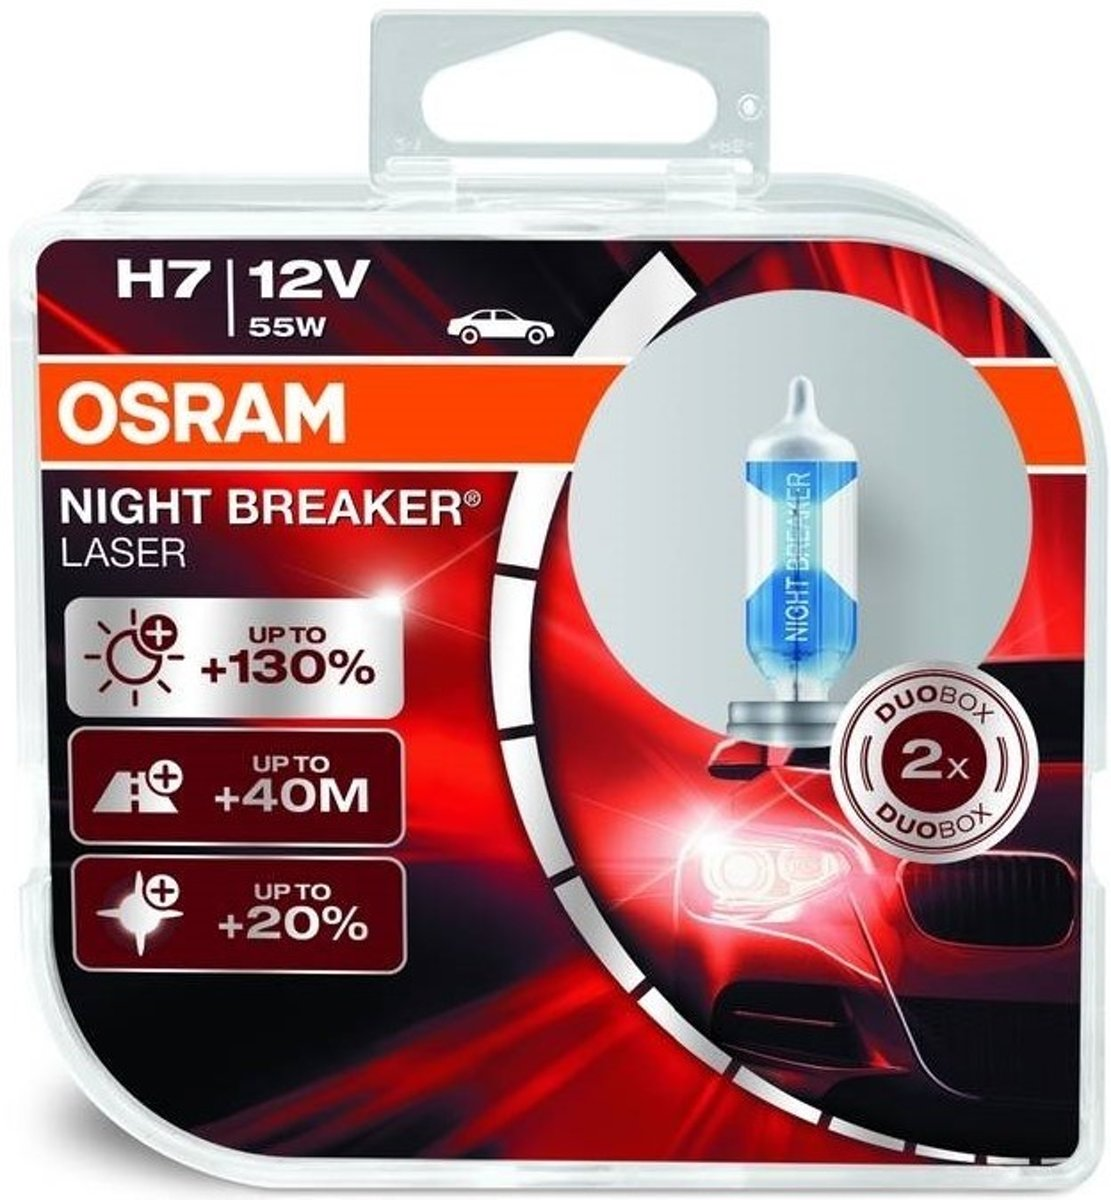 Beste H7 Lampen Osram Night Breaker Laser H7 12v Set